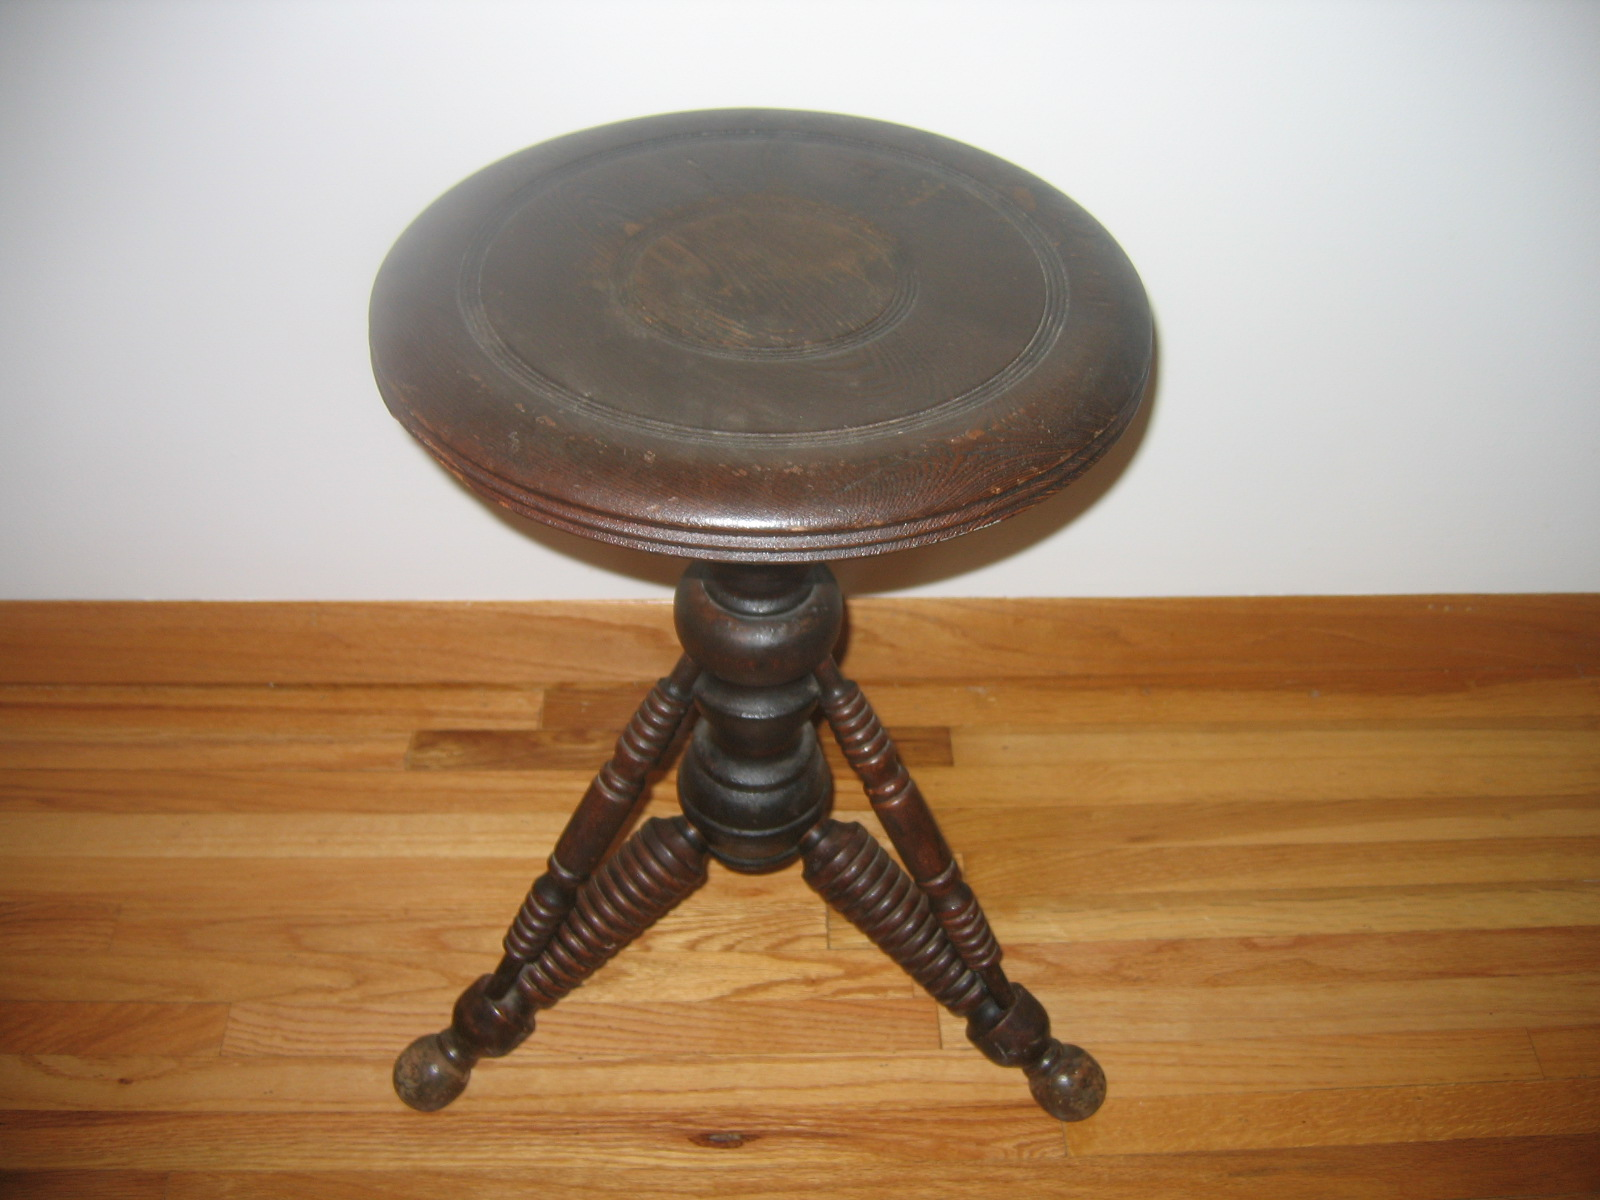 Antique Eastlake Wooden Swivel Adjustable Piano Stool Item